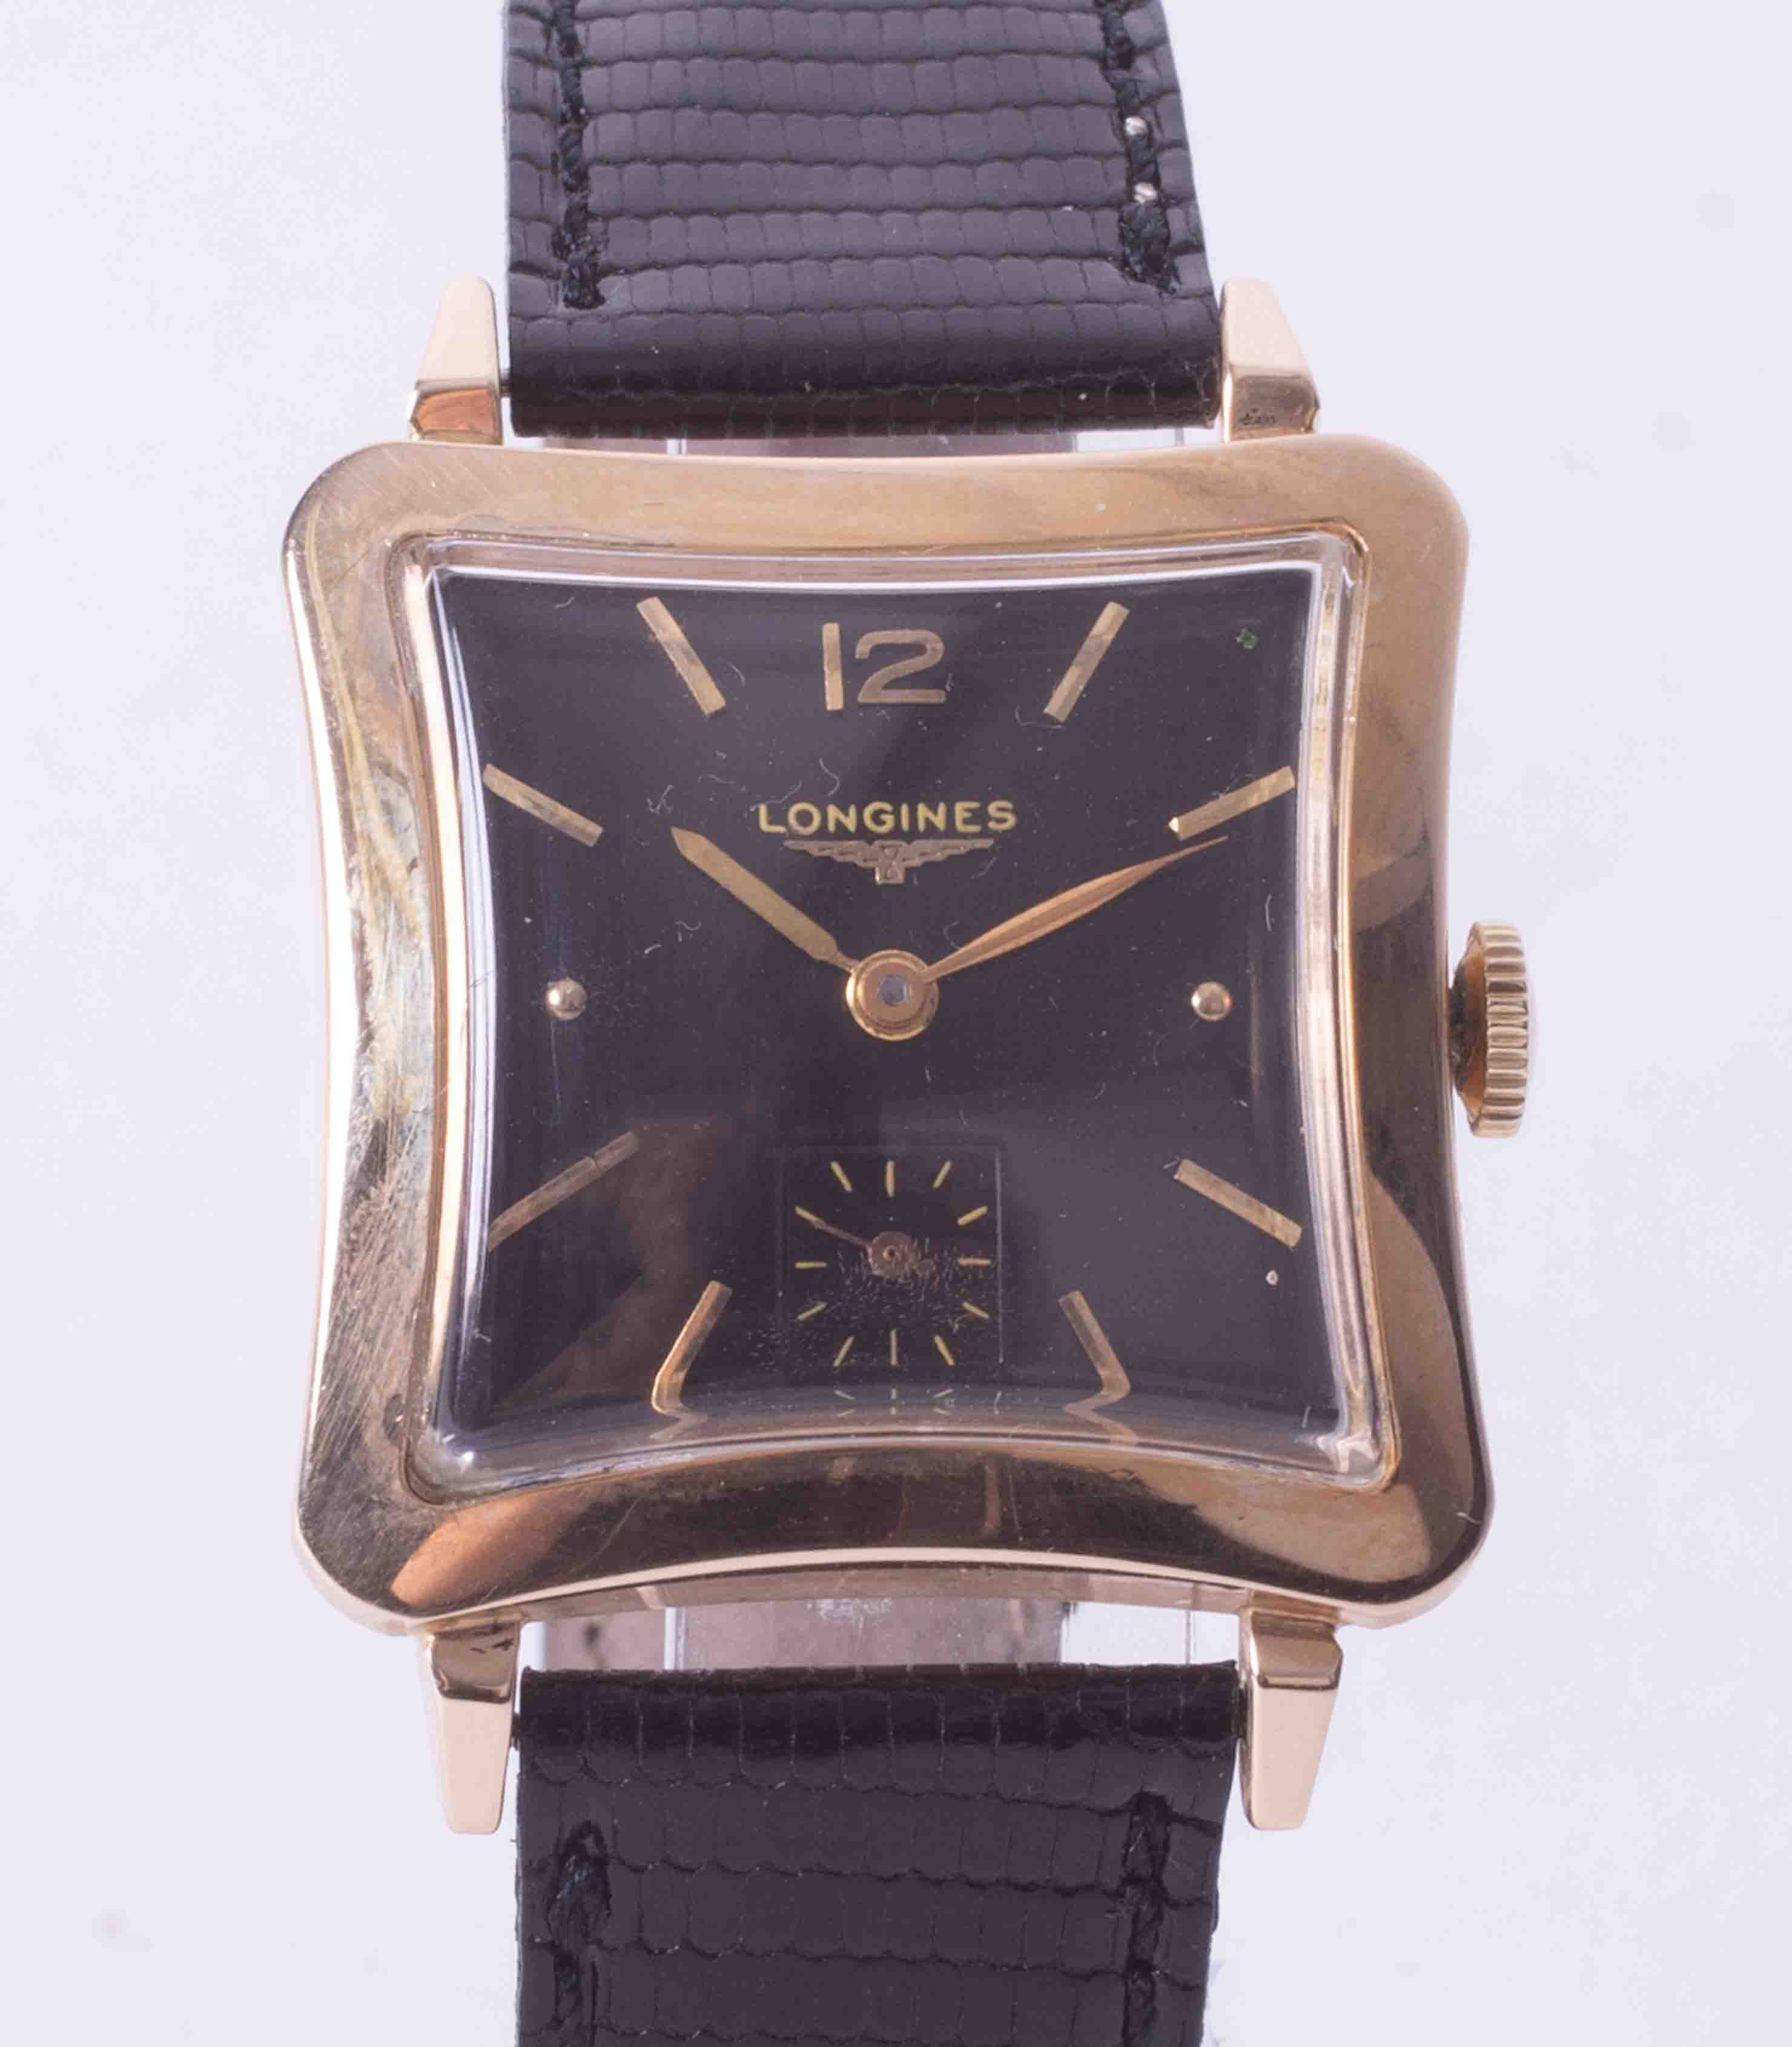 Longines, a gents curve shape square wrist watch, manual wind Longines movement with small sub